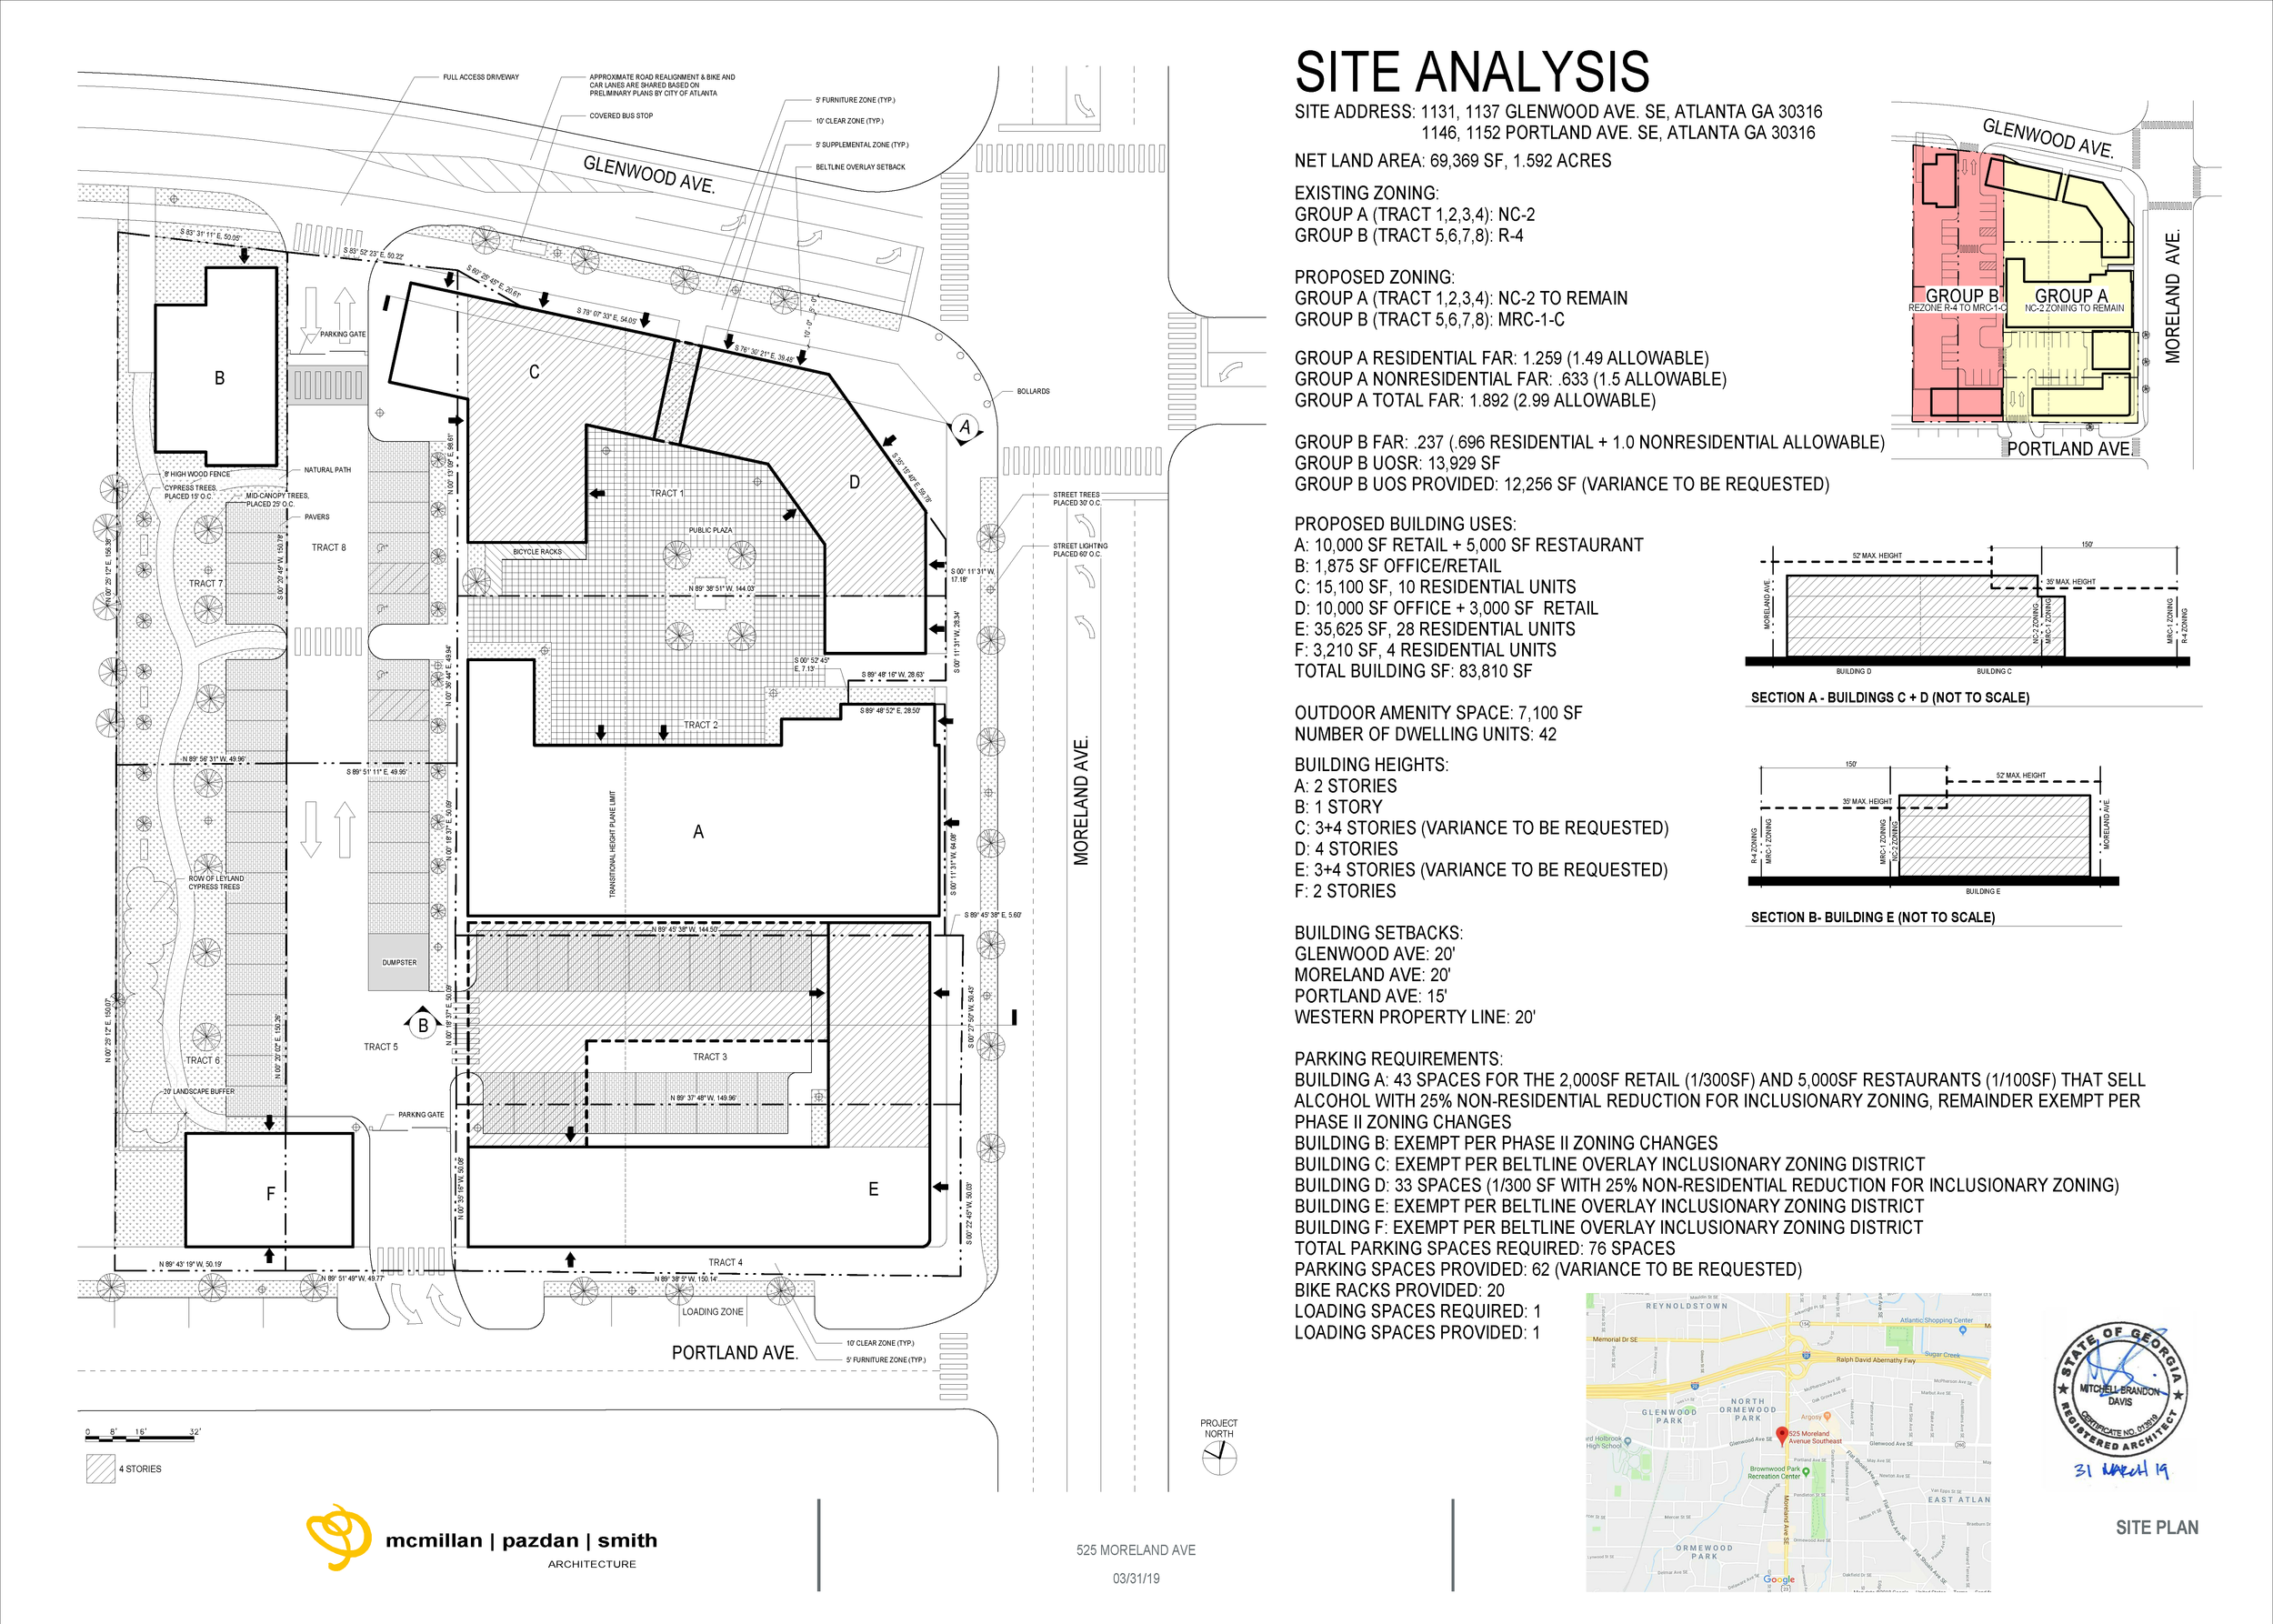 Final approved site plan for the rezoning.